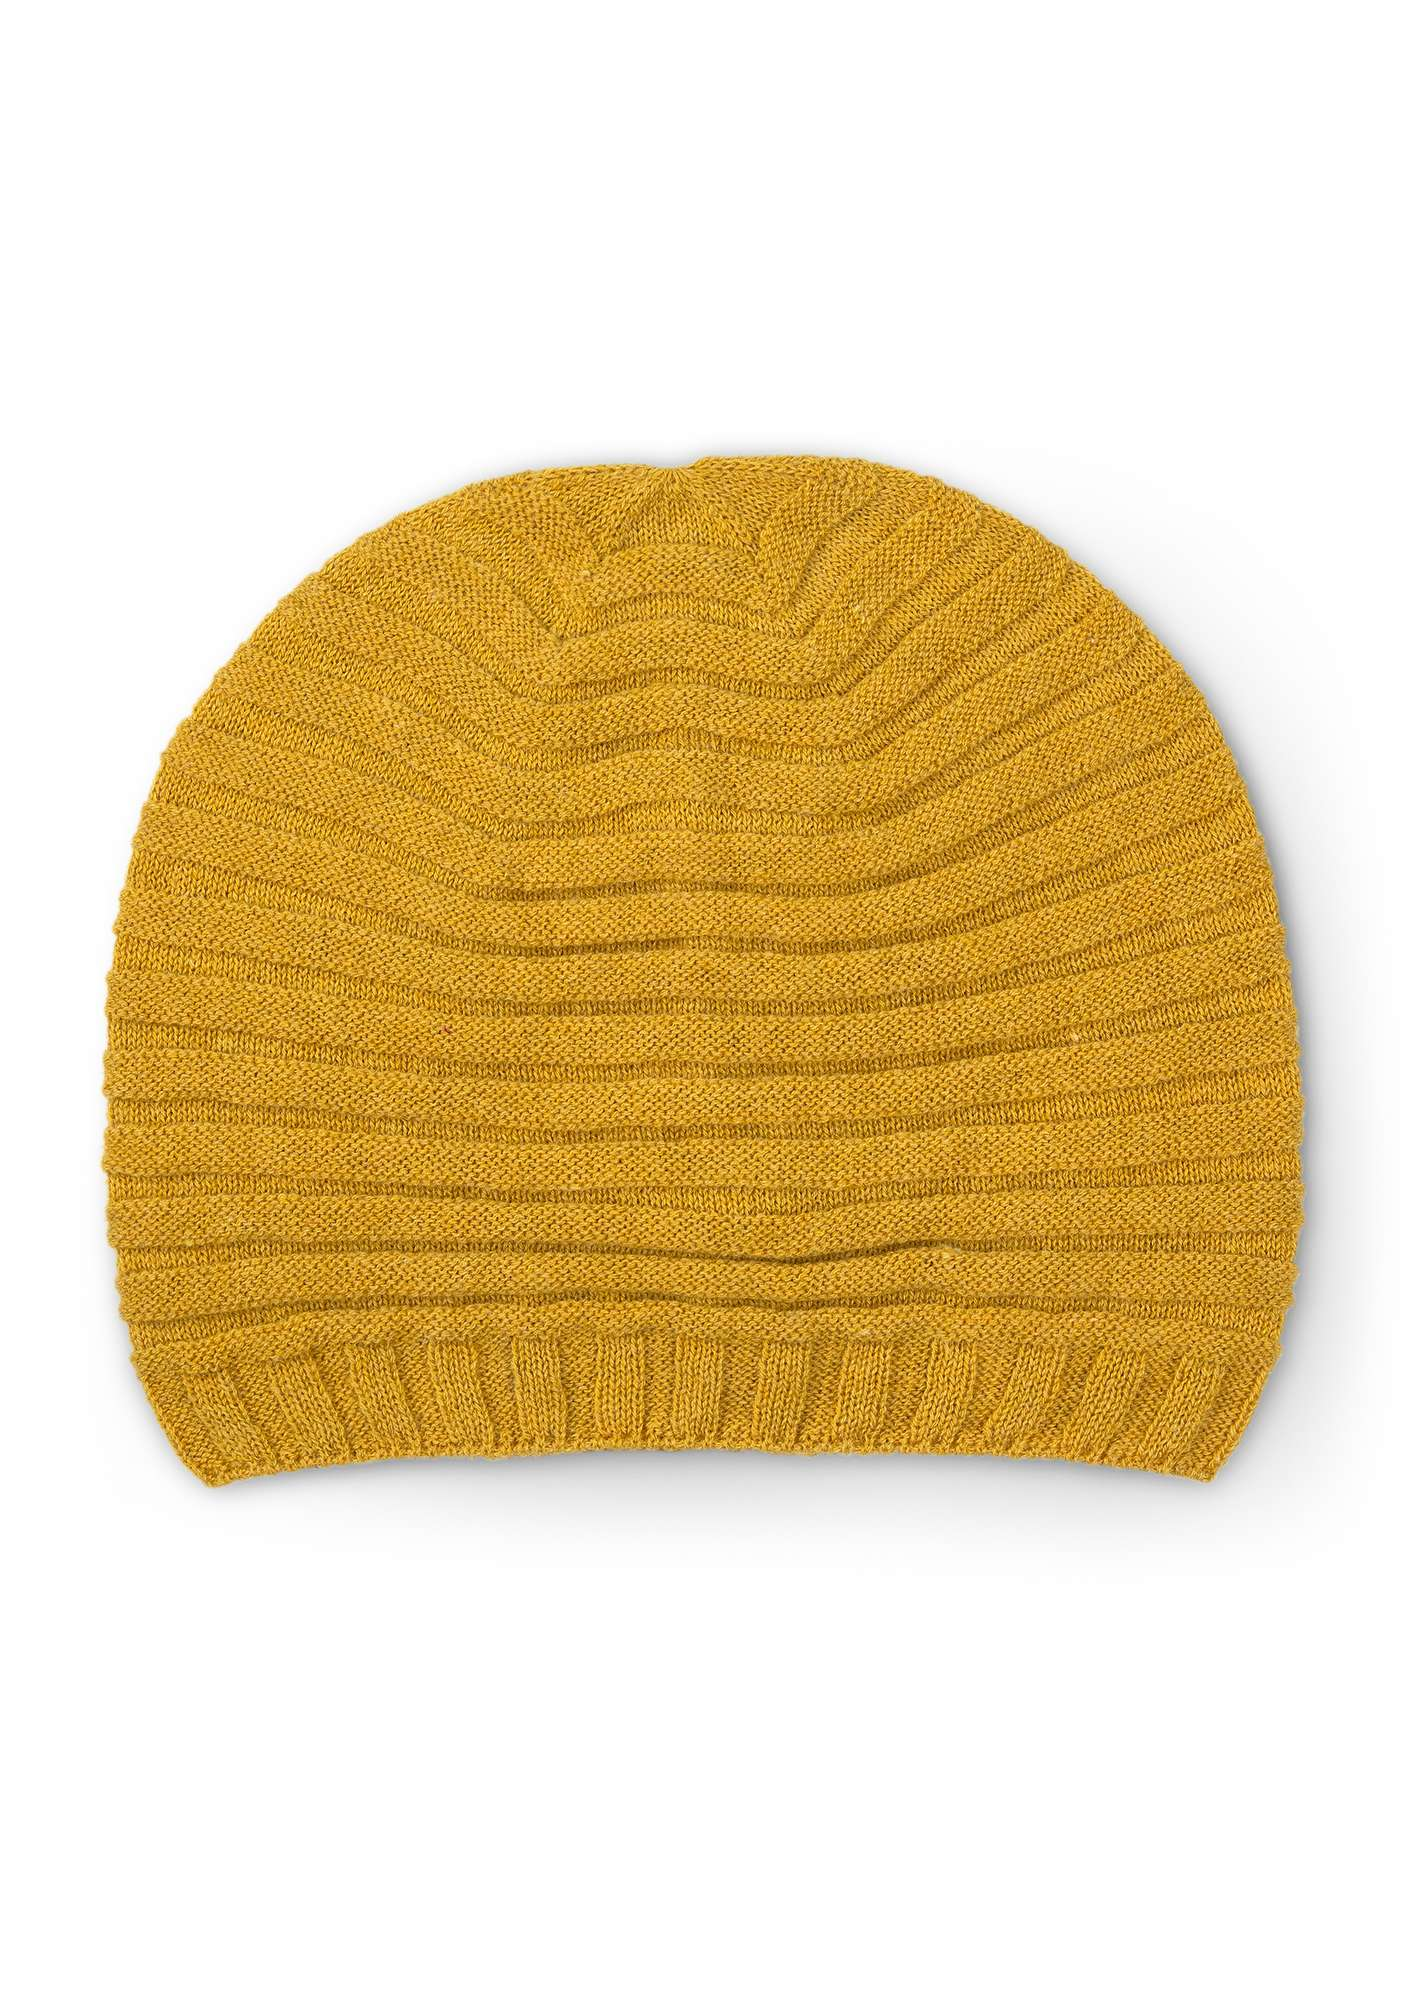 Pleated hat in a recycled cashmere blend pineapple